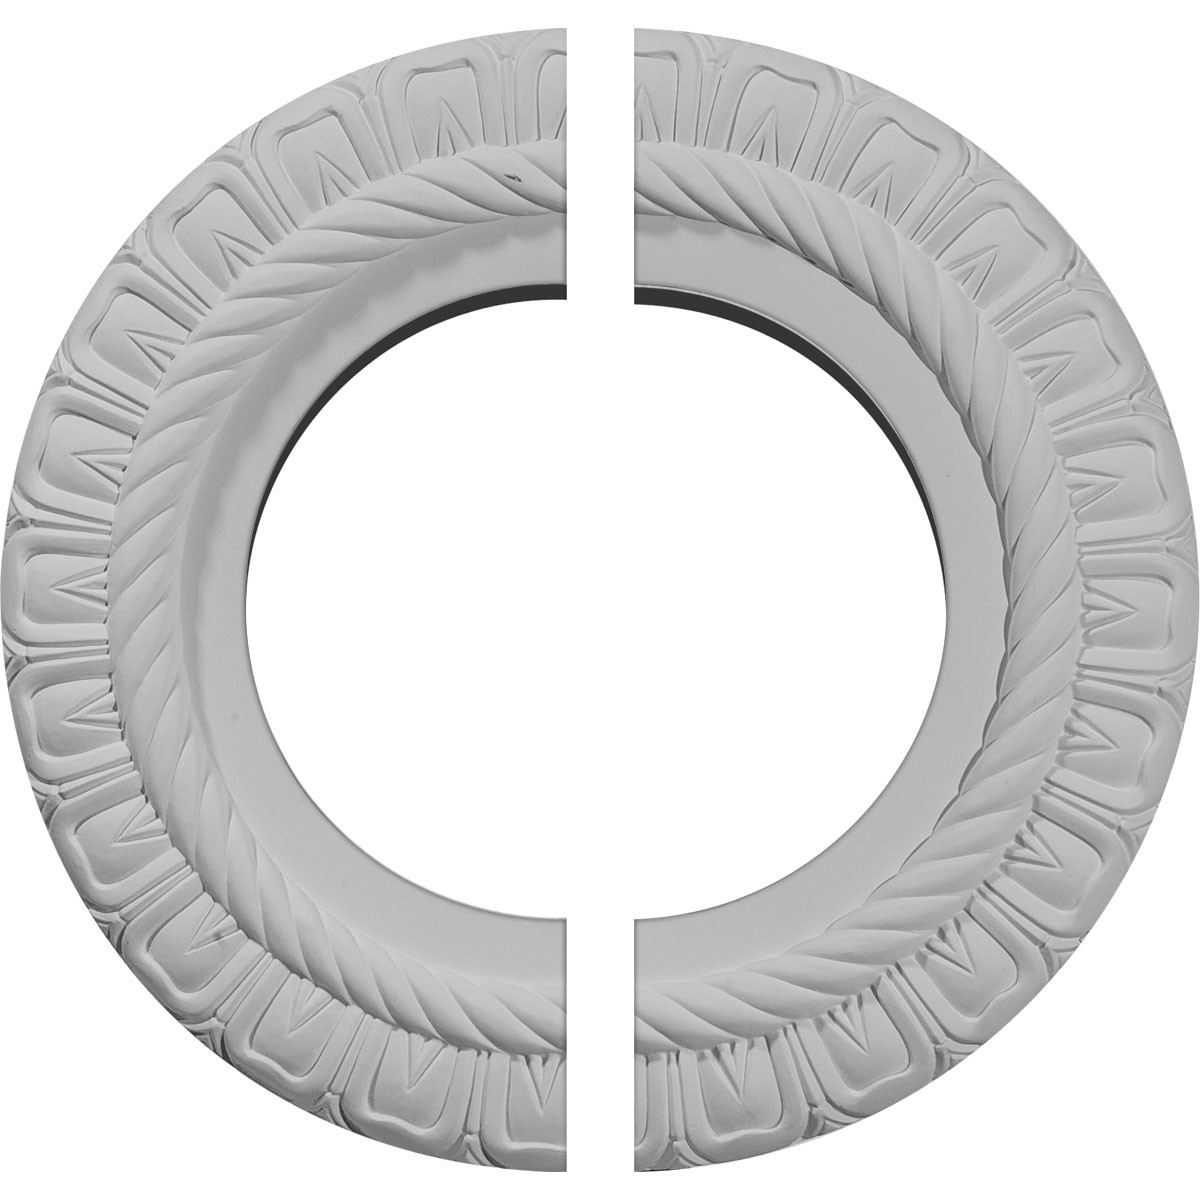 """EM-CM10CL2 - 10 5/8""""OD x 5 3/4""""ID x 1/2""""P Claremont Ceiling Medallion, Two Piece (Fits Canopies up to 7"""")"""